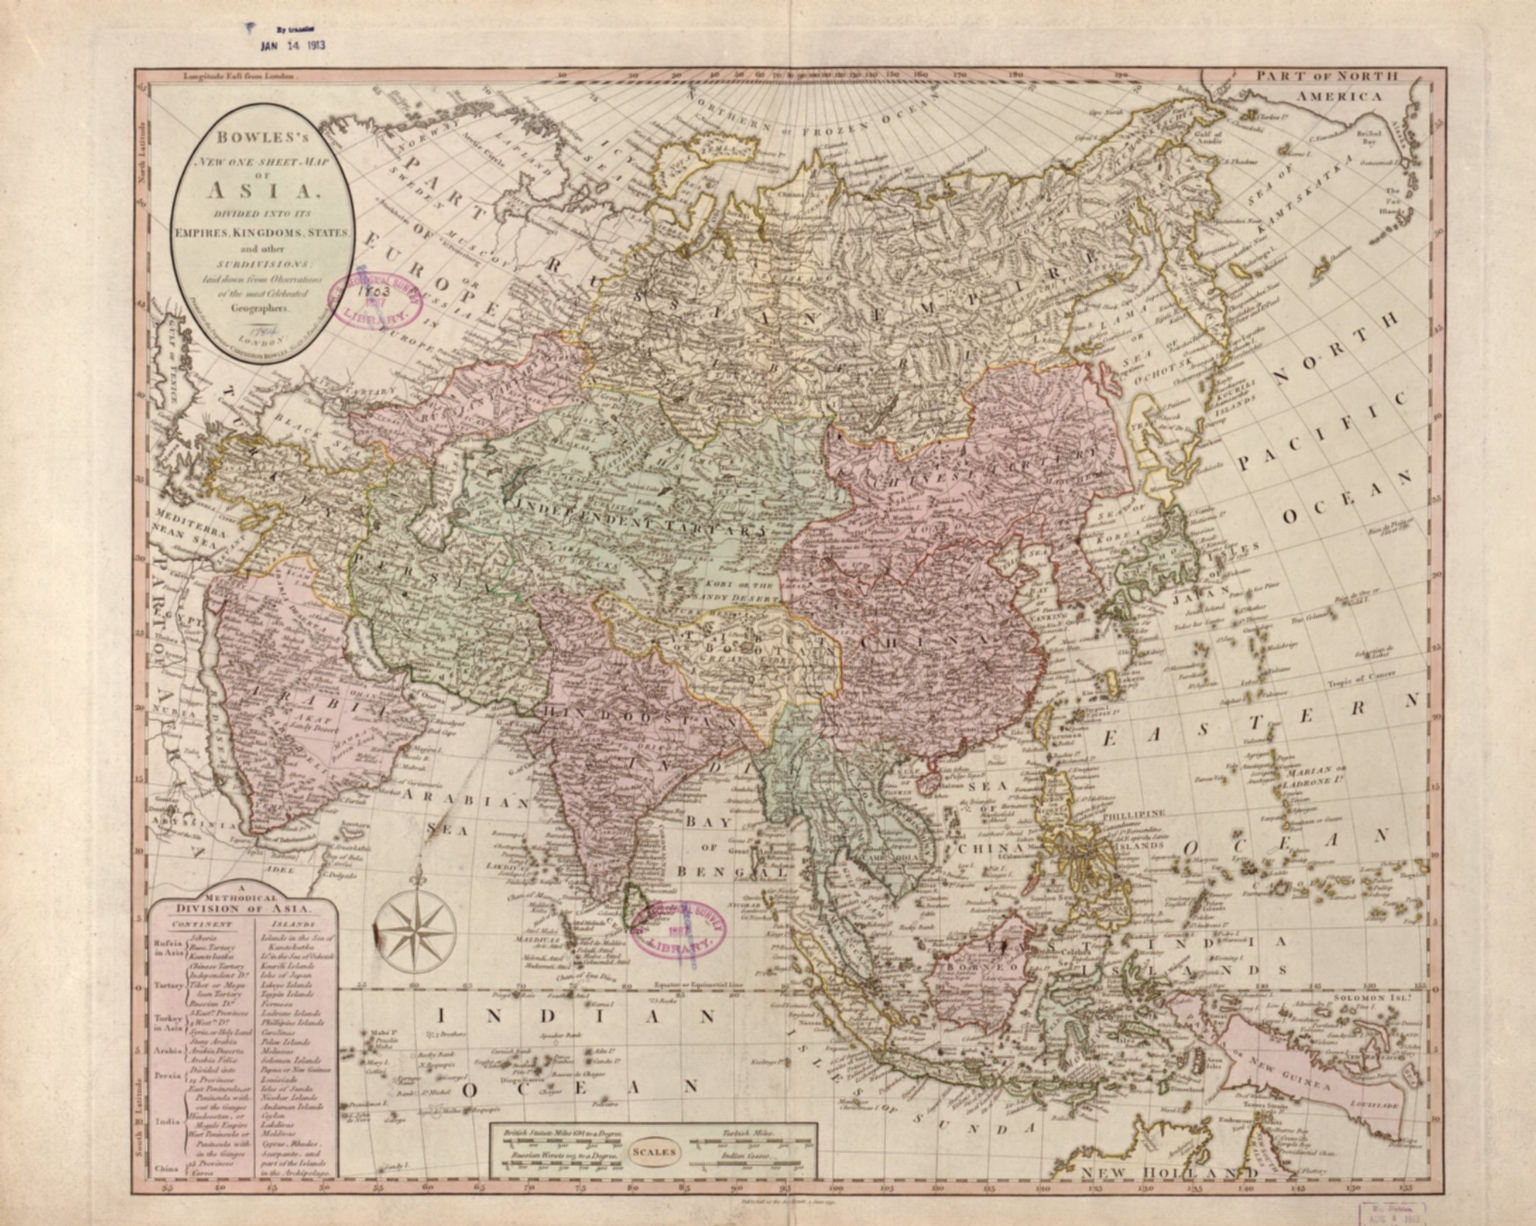 Bowles's new one-sheet map of Asia, divided into its empires, kingdoms, states, and other subdivisions : laid down from observations of the most celebrated geographers